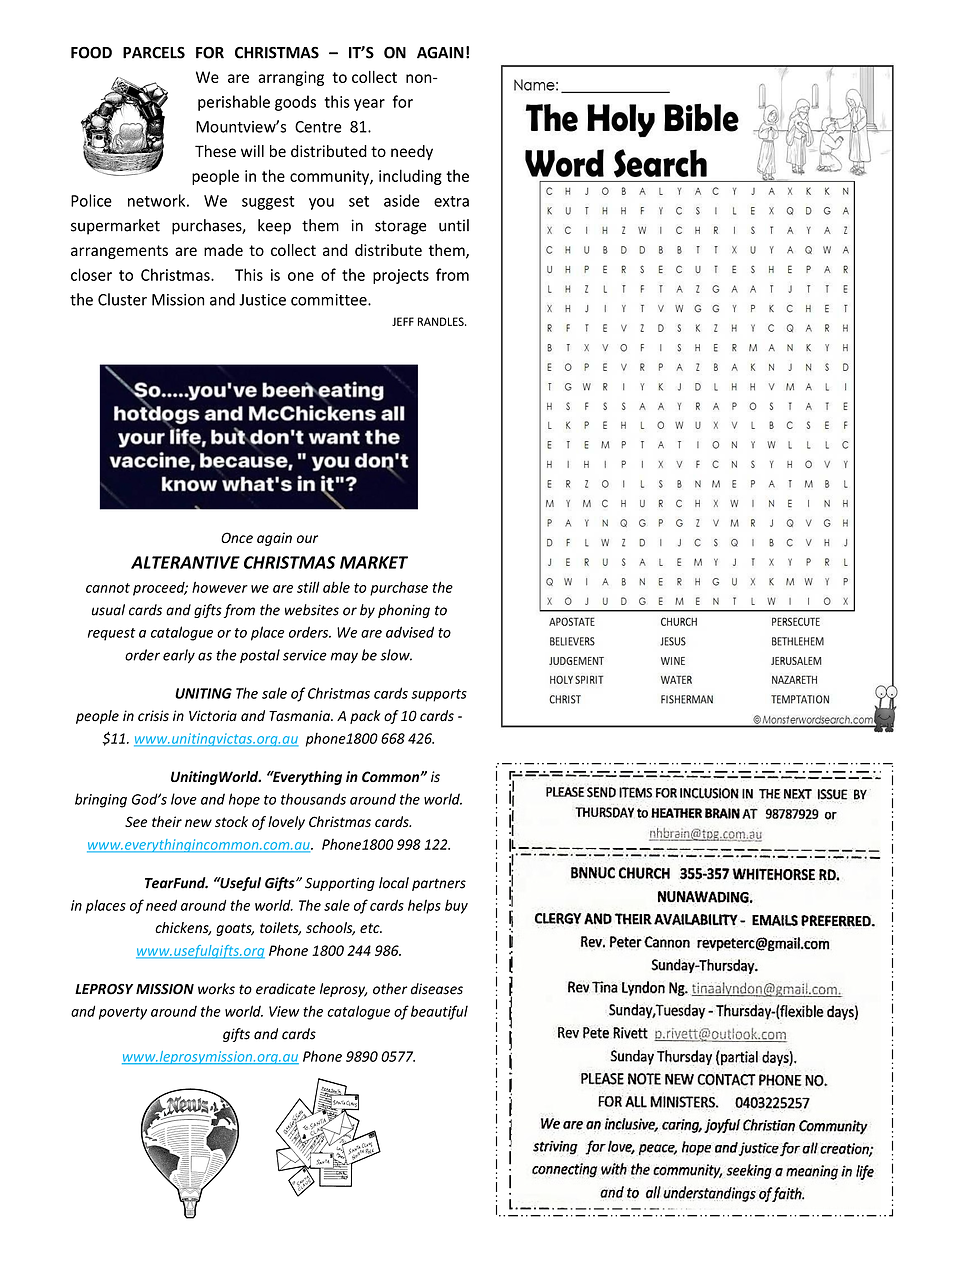 BNNUC Newsletter 17-10-21_Page_2.png